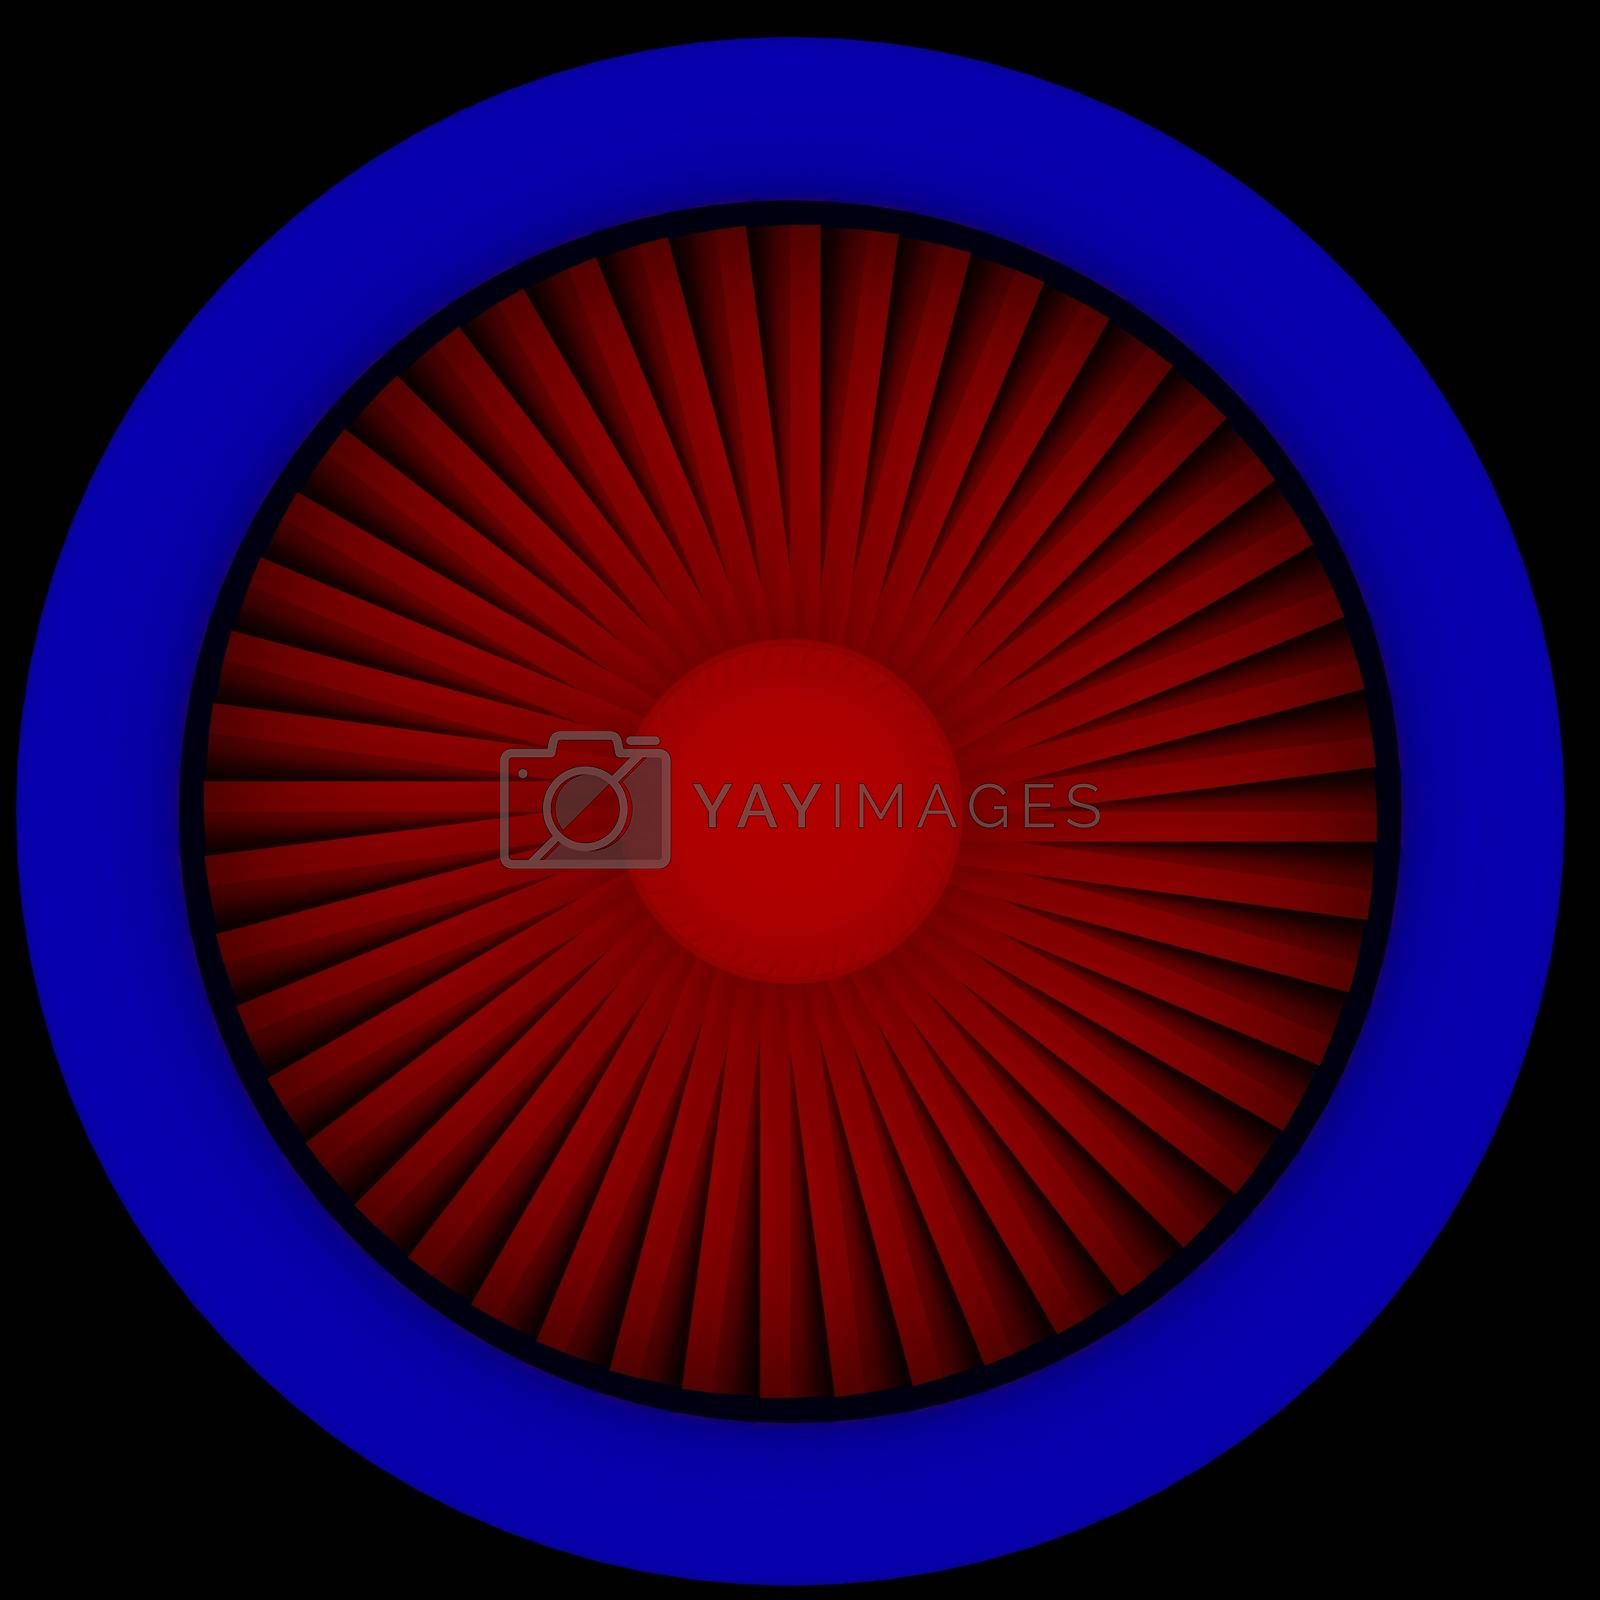 Jet engine. Front view. Red and blue turbine housing. Isolated on white background